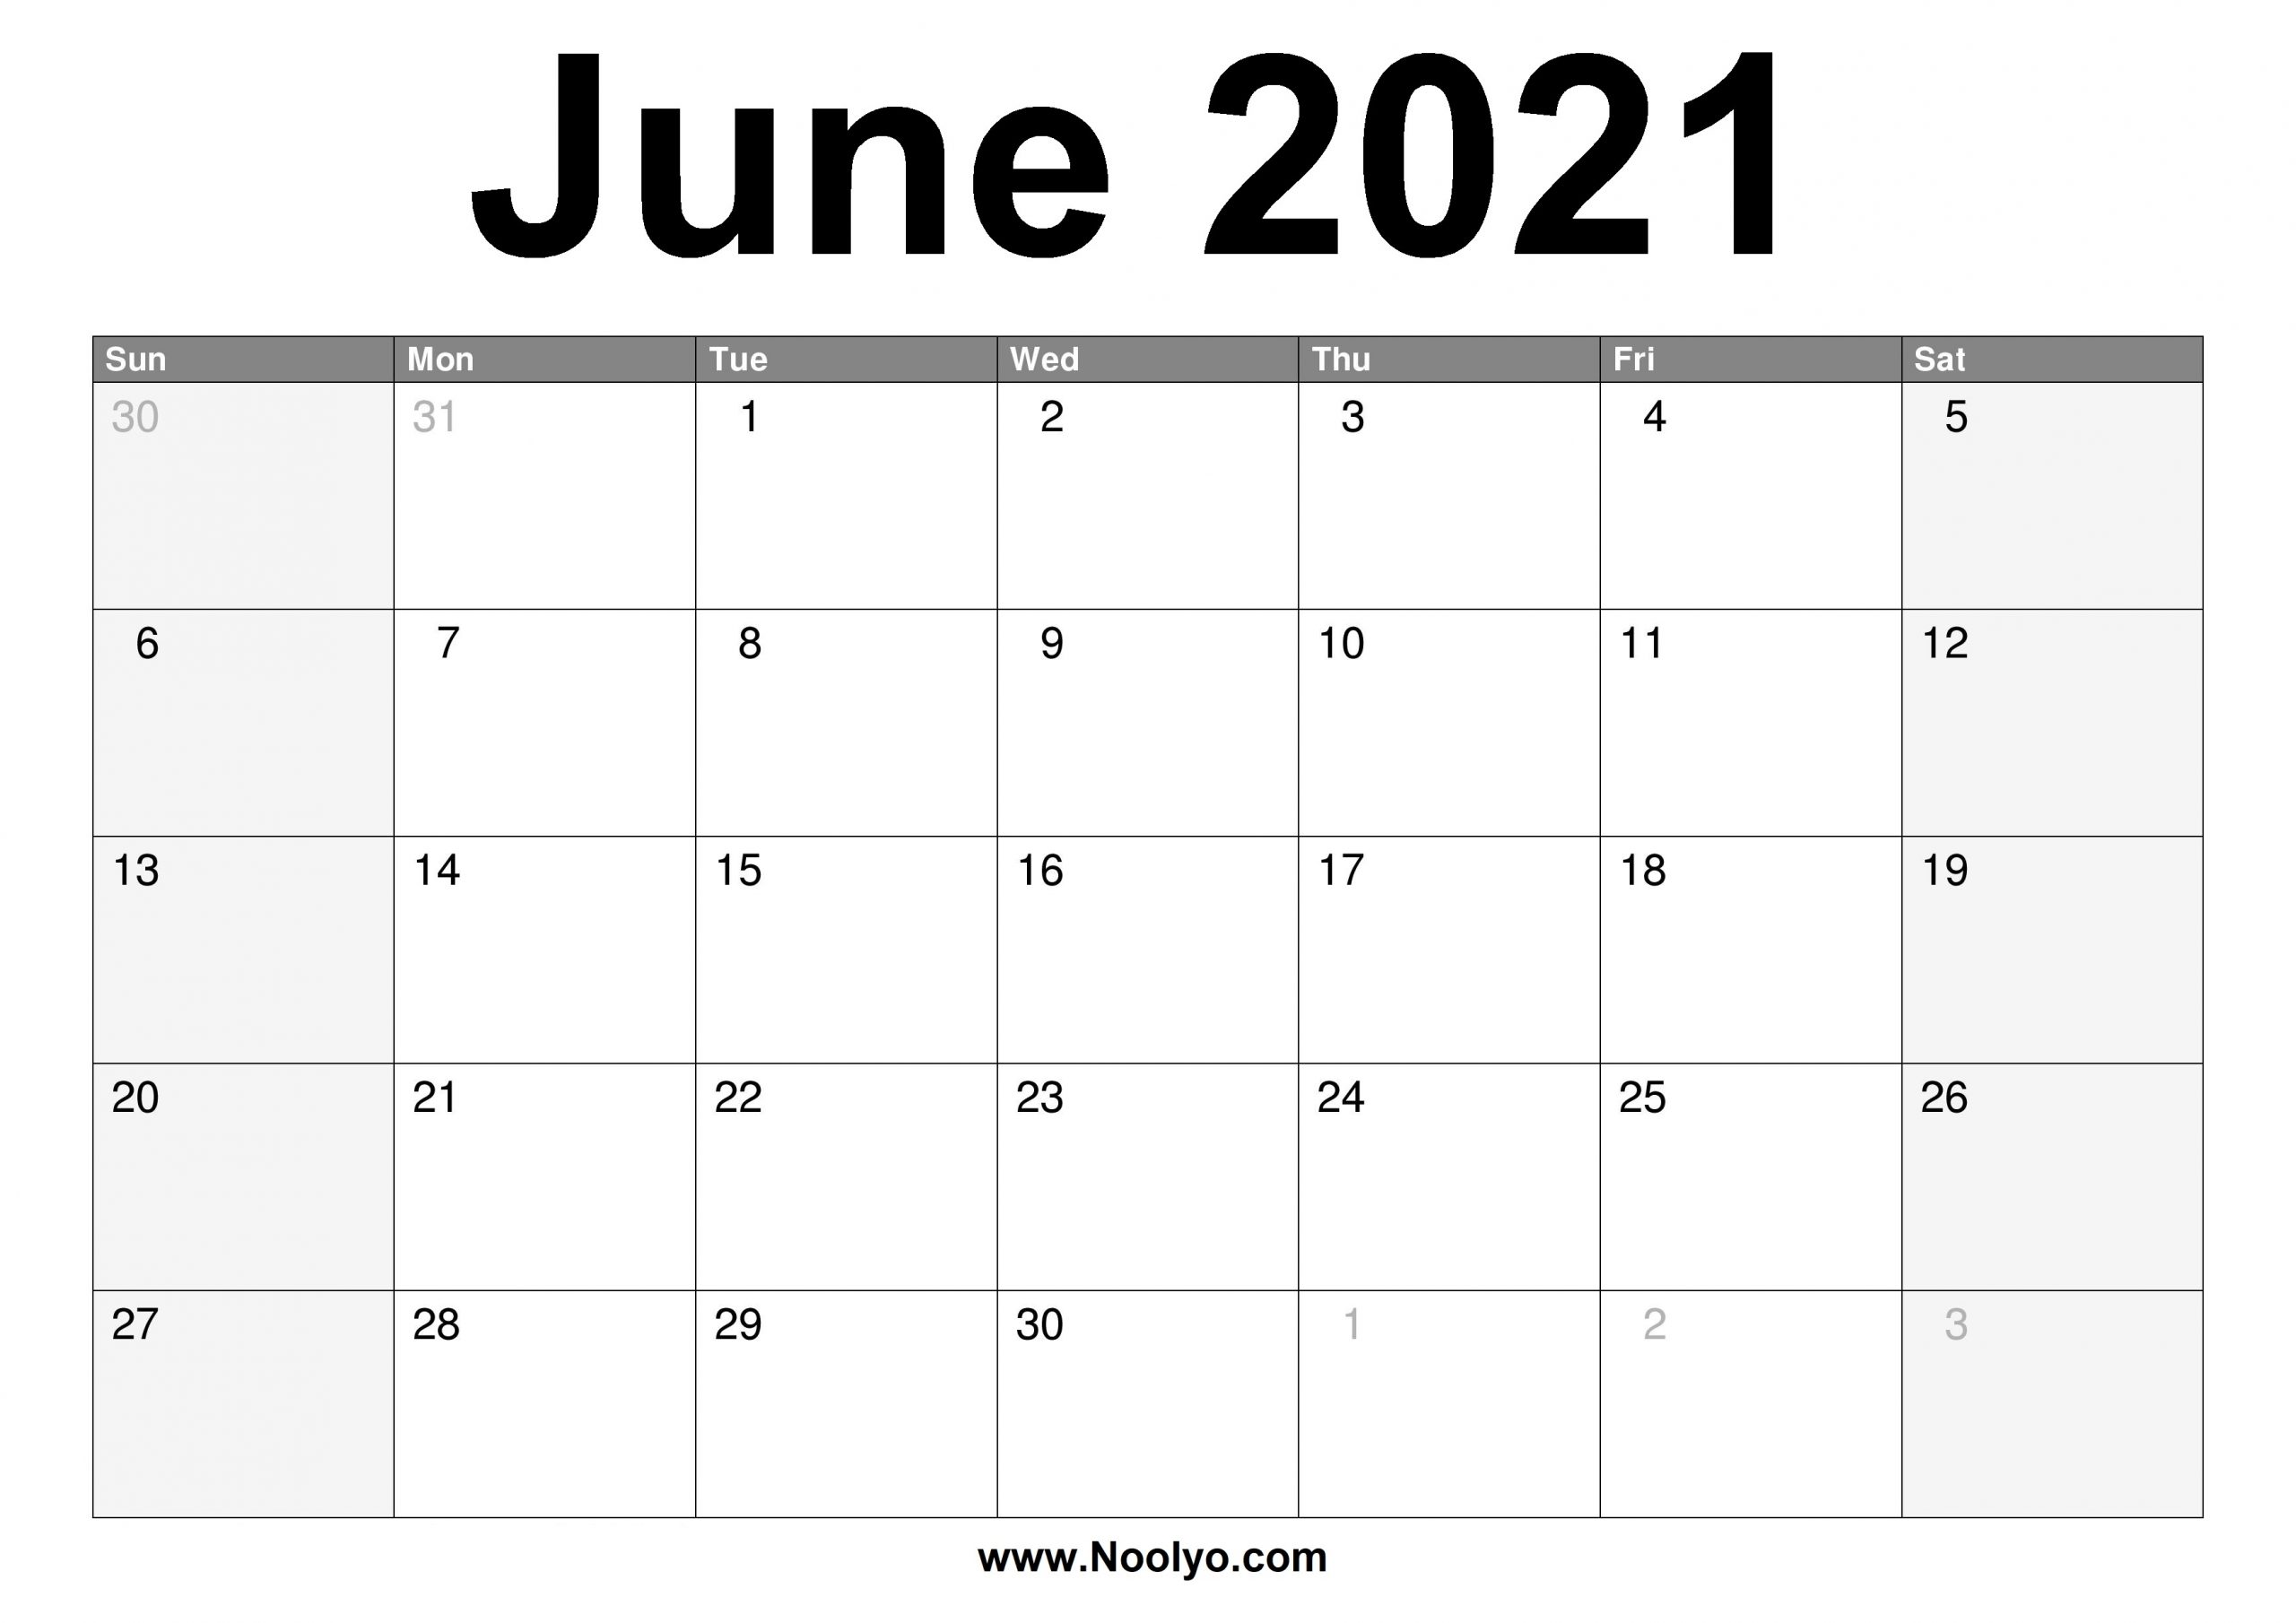 Pick 2021 June Calendars To Print Without Downloading